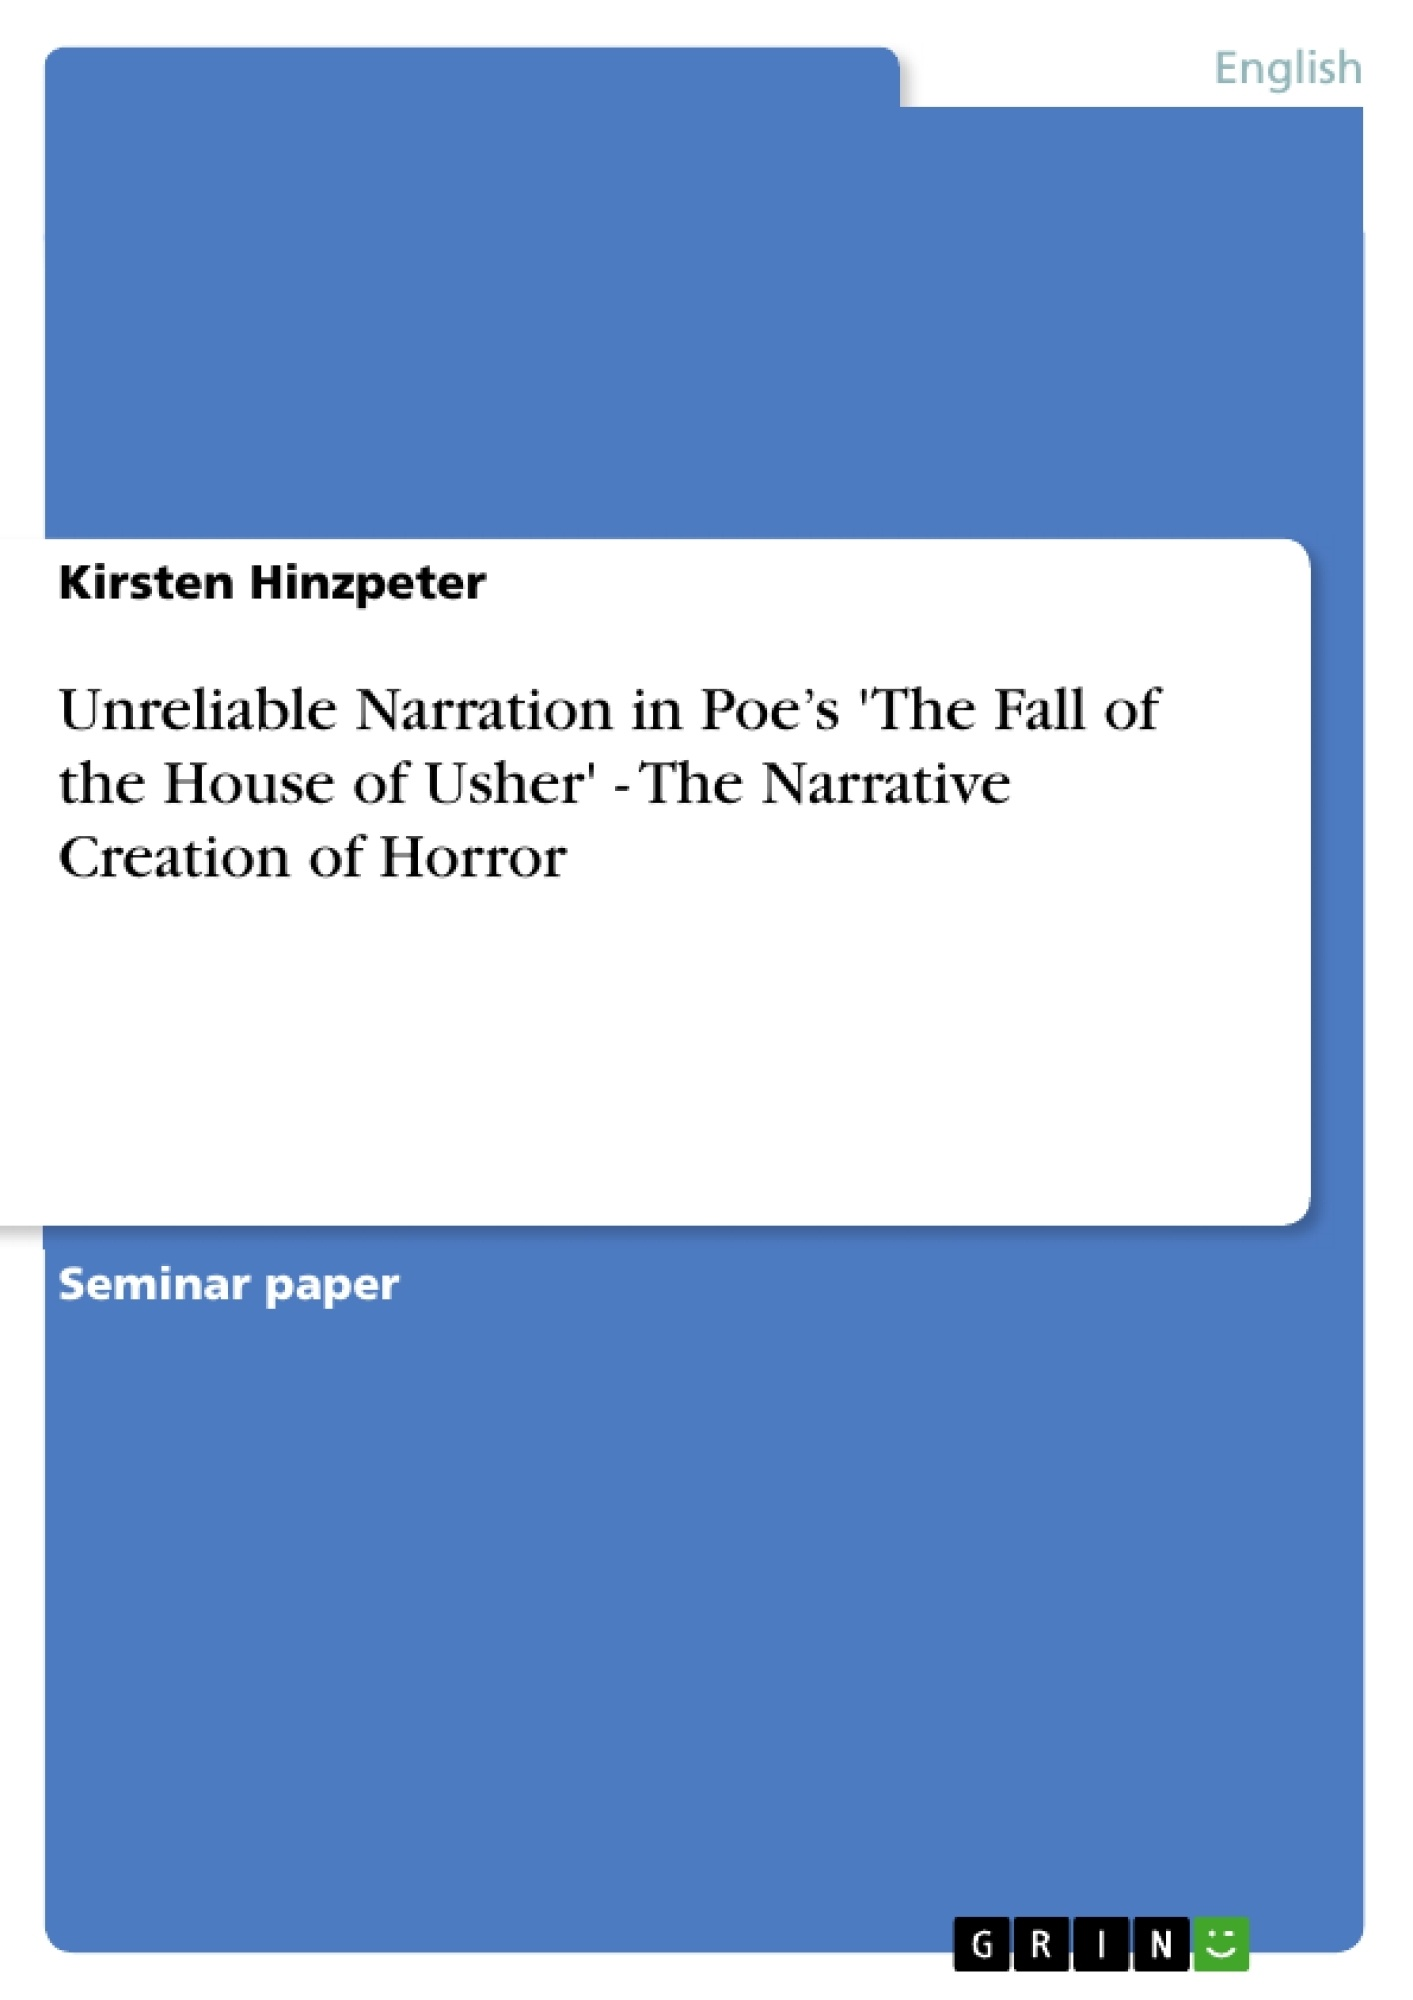 unreliable narration in poe s the fall of the house of usher  upload your own papers earn money and win an iphone x